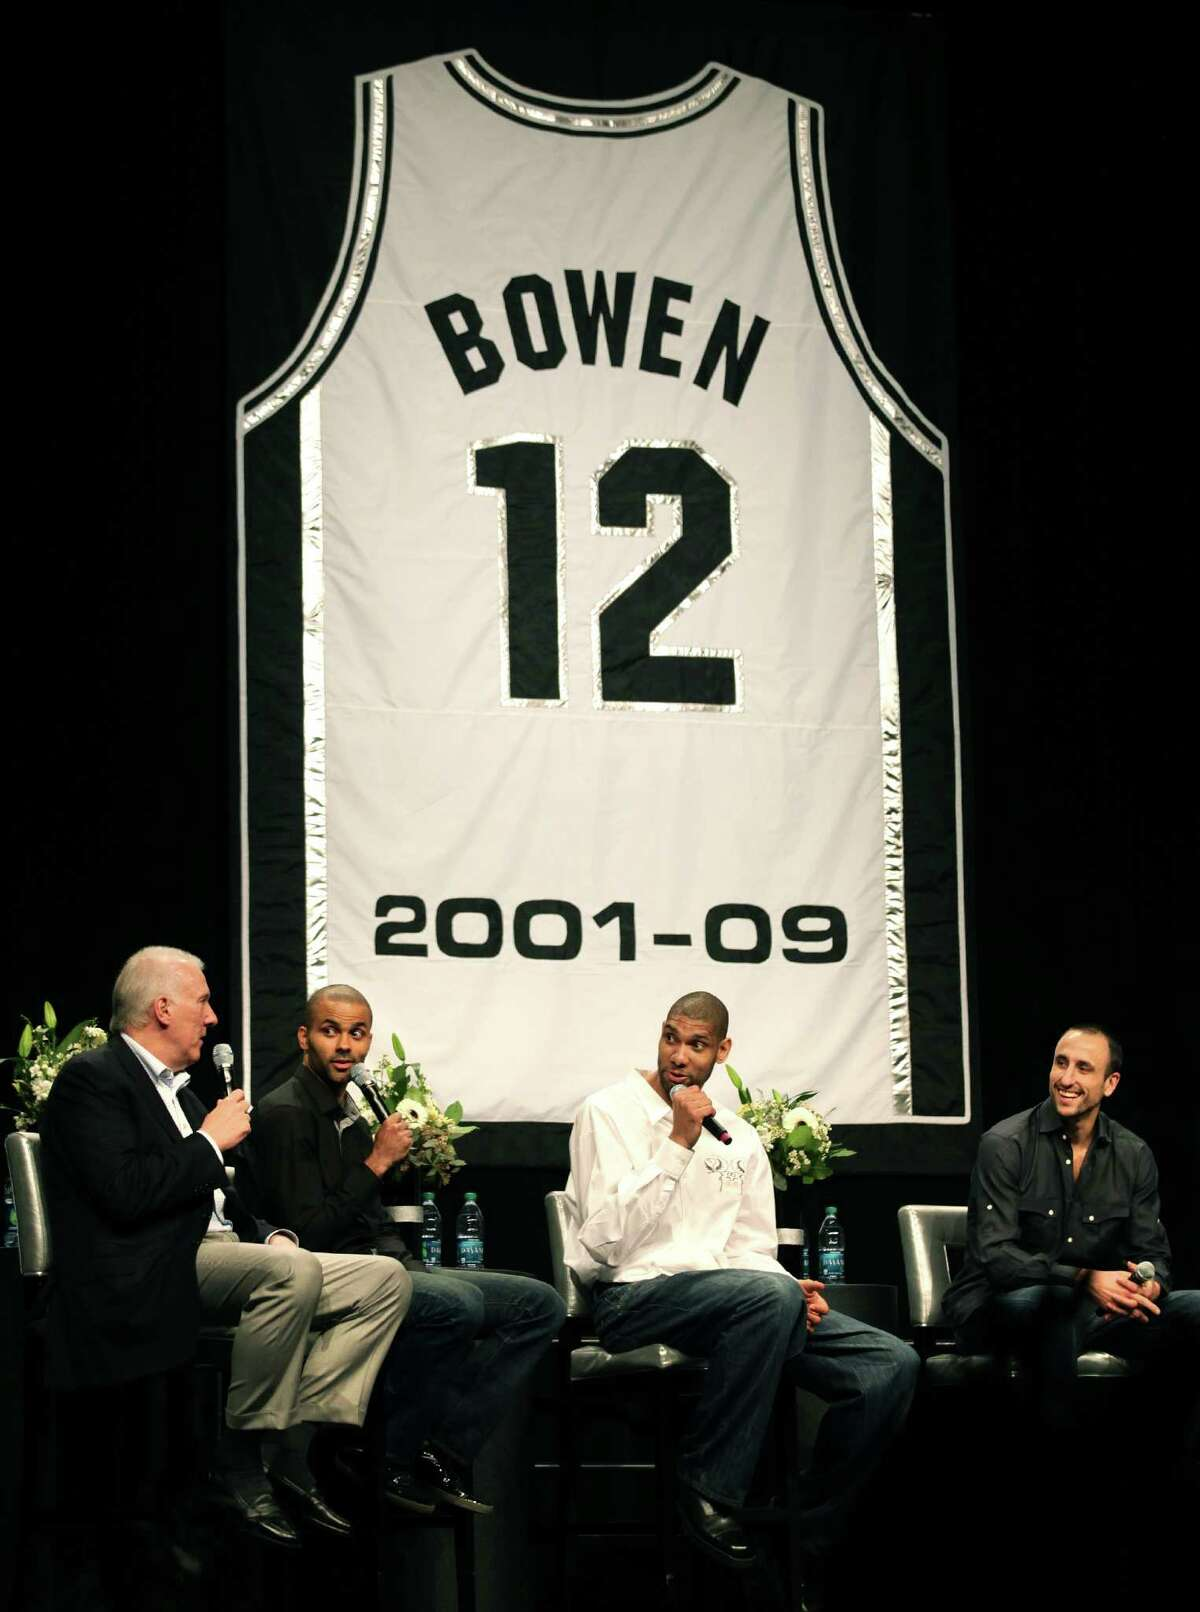 Coach Gregg Popovich, left to right, Tony Parker, Tim Duncan, and Manu Ginobili, tell stories about Bruce Bowen at his Jersey Retirement Luncheon at the ATT Center, Monday, March 19, 2012. Bob Owen/San Antonio Express-News.